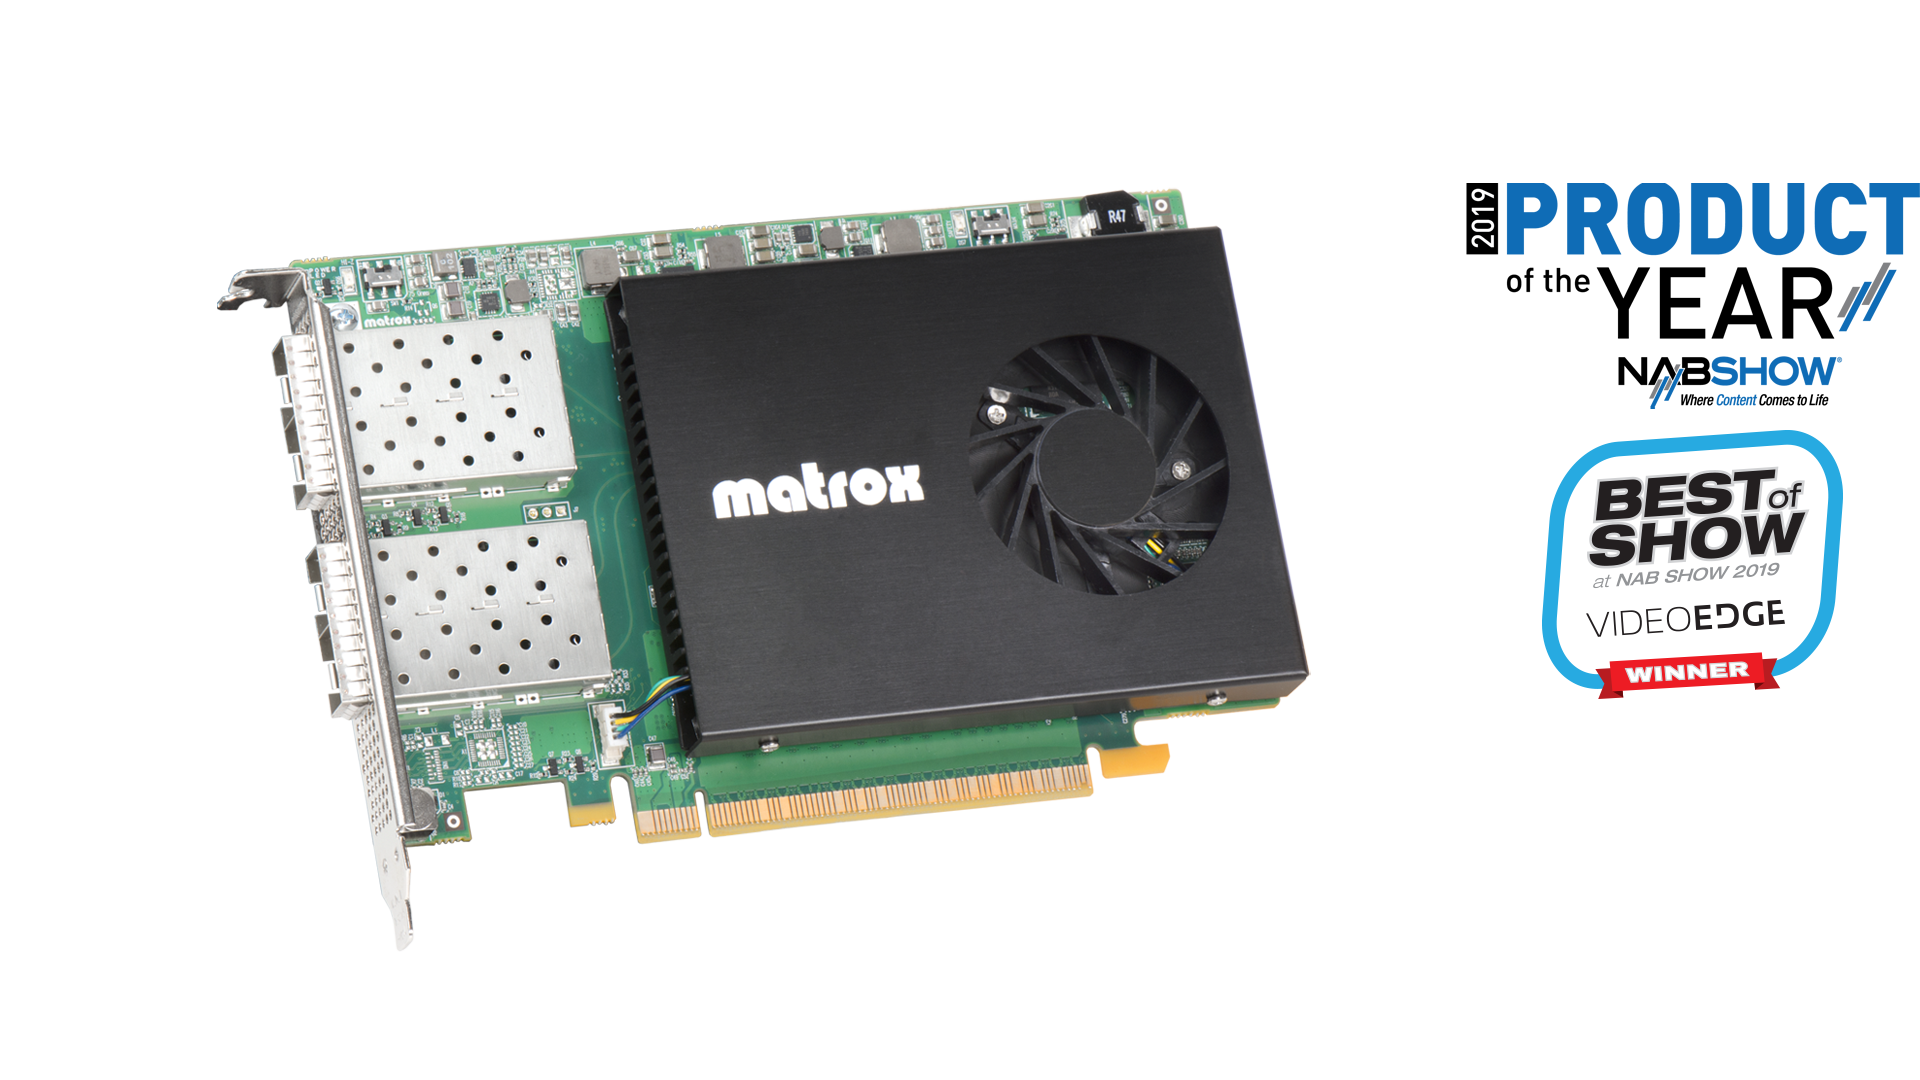 Matrox DSX LE5 Q25 SMPTE ST 2110 25 GbE NIC Card Wins Product of the Year at NAB Show 2019